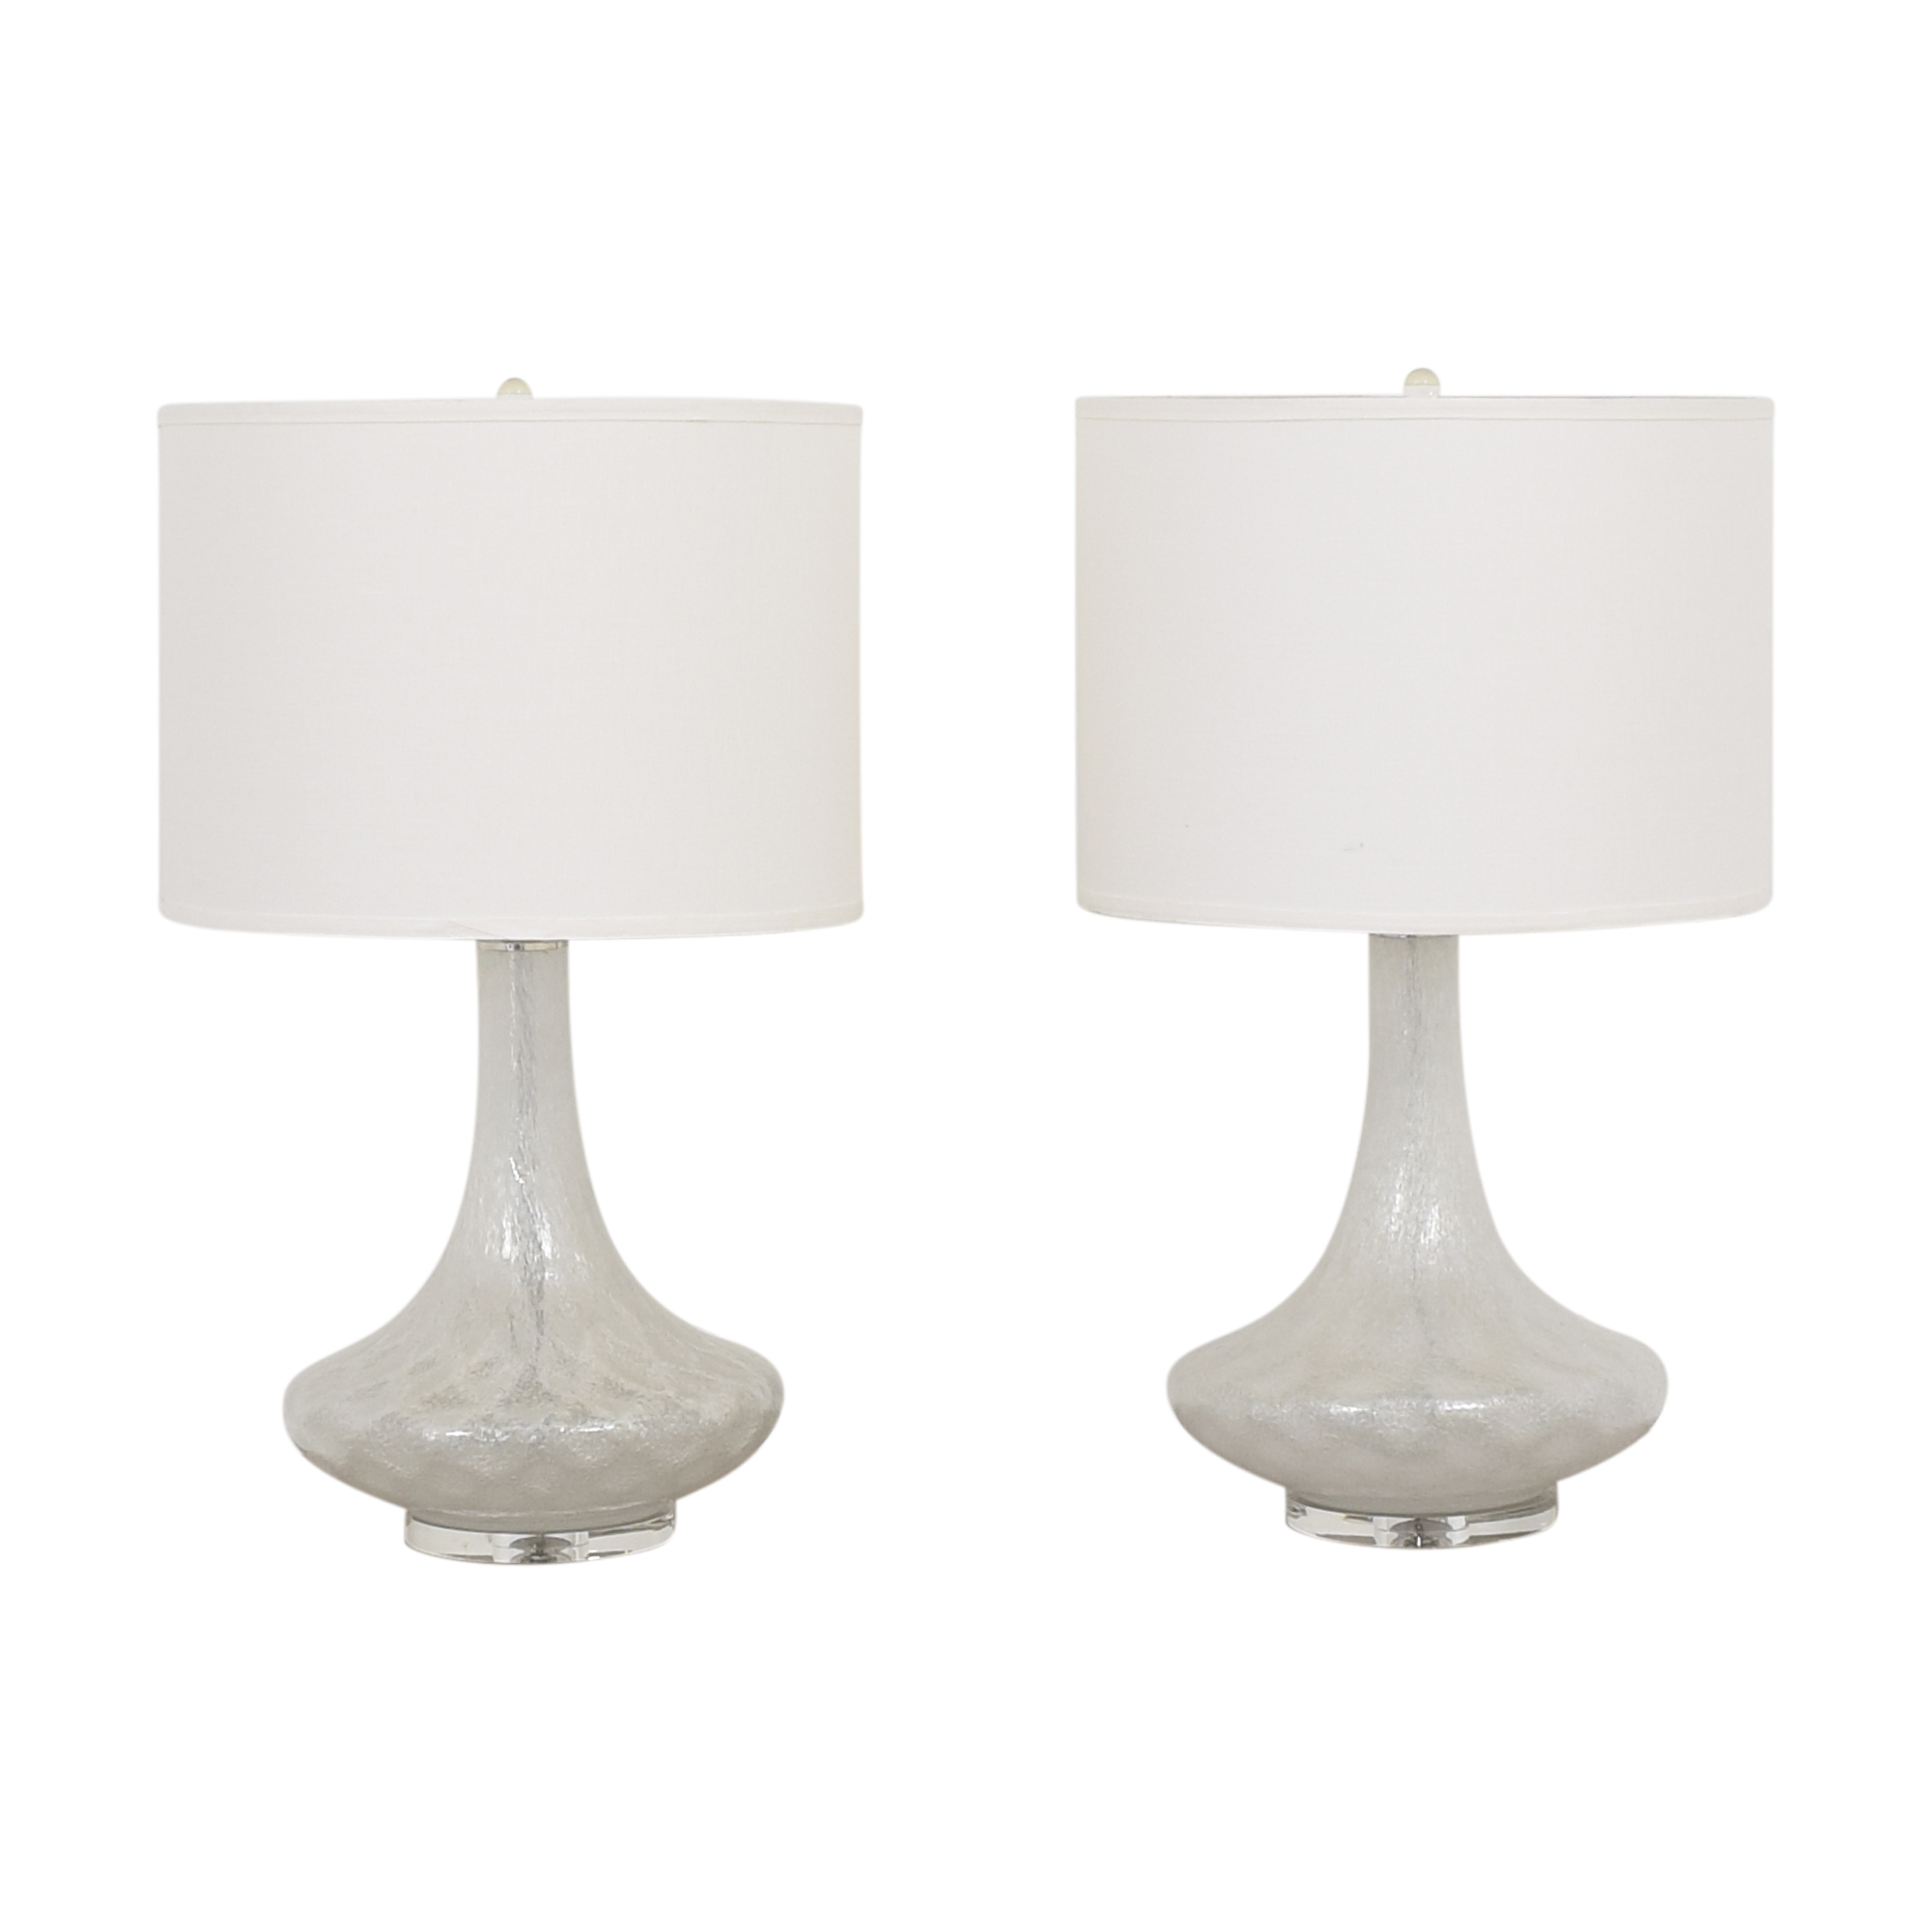 Safavieh Safavieh Table Lamps price